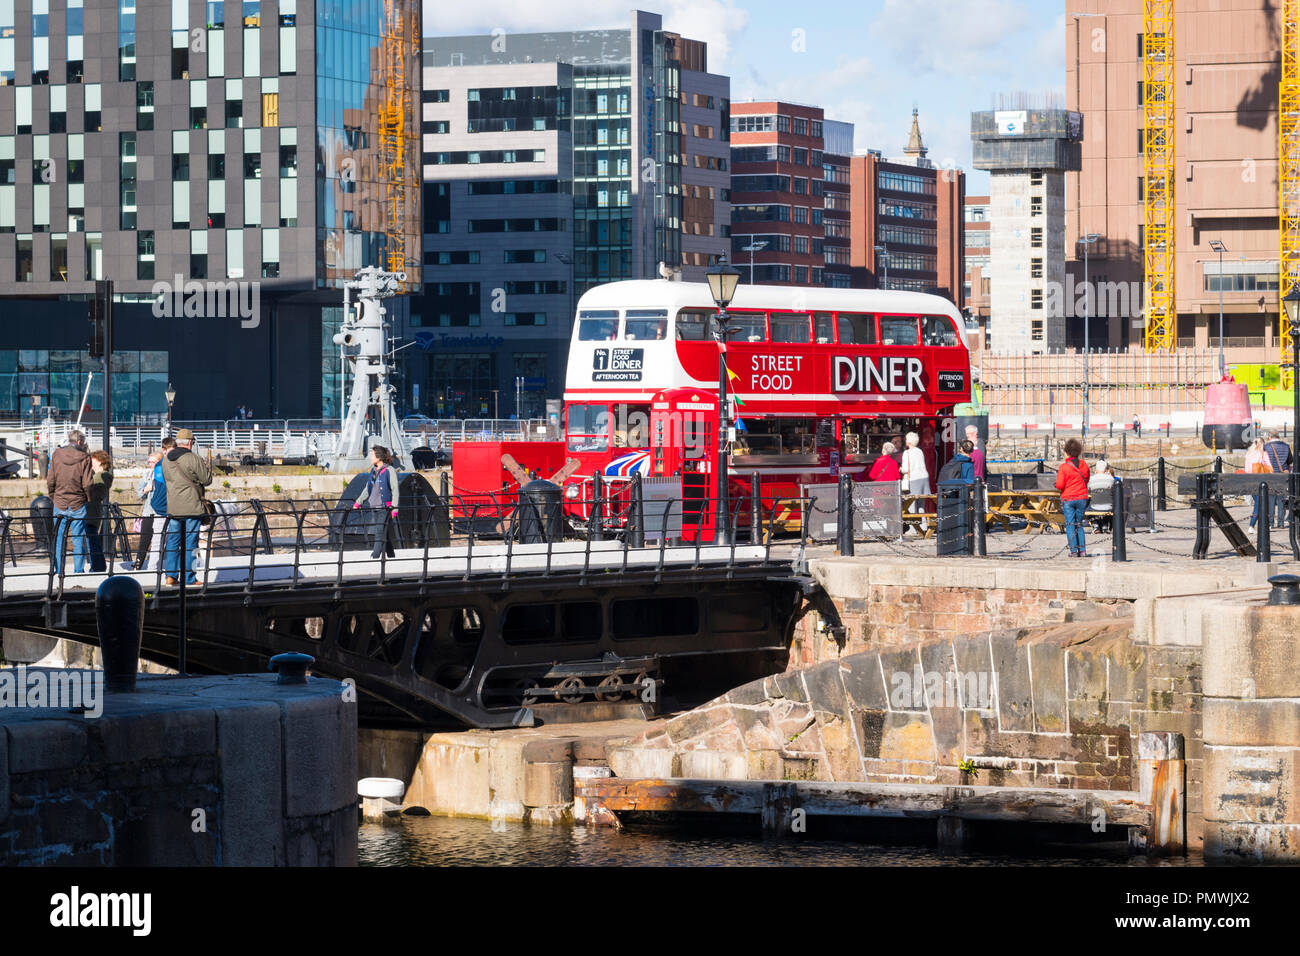 Liverpool Canning Dock double decker London Transport bus Street Food Diner restaurant bar takeaway takeout wooden tables benches red phone book - Stock Image